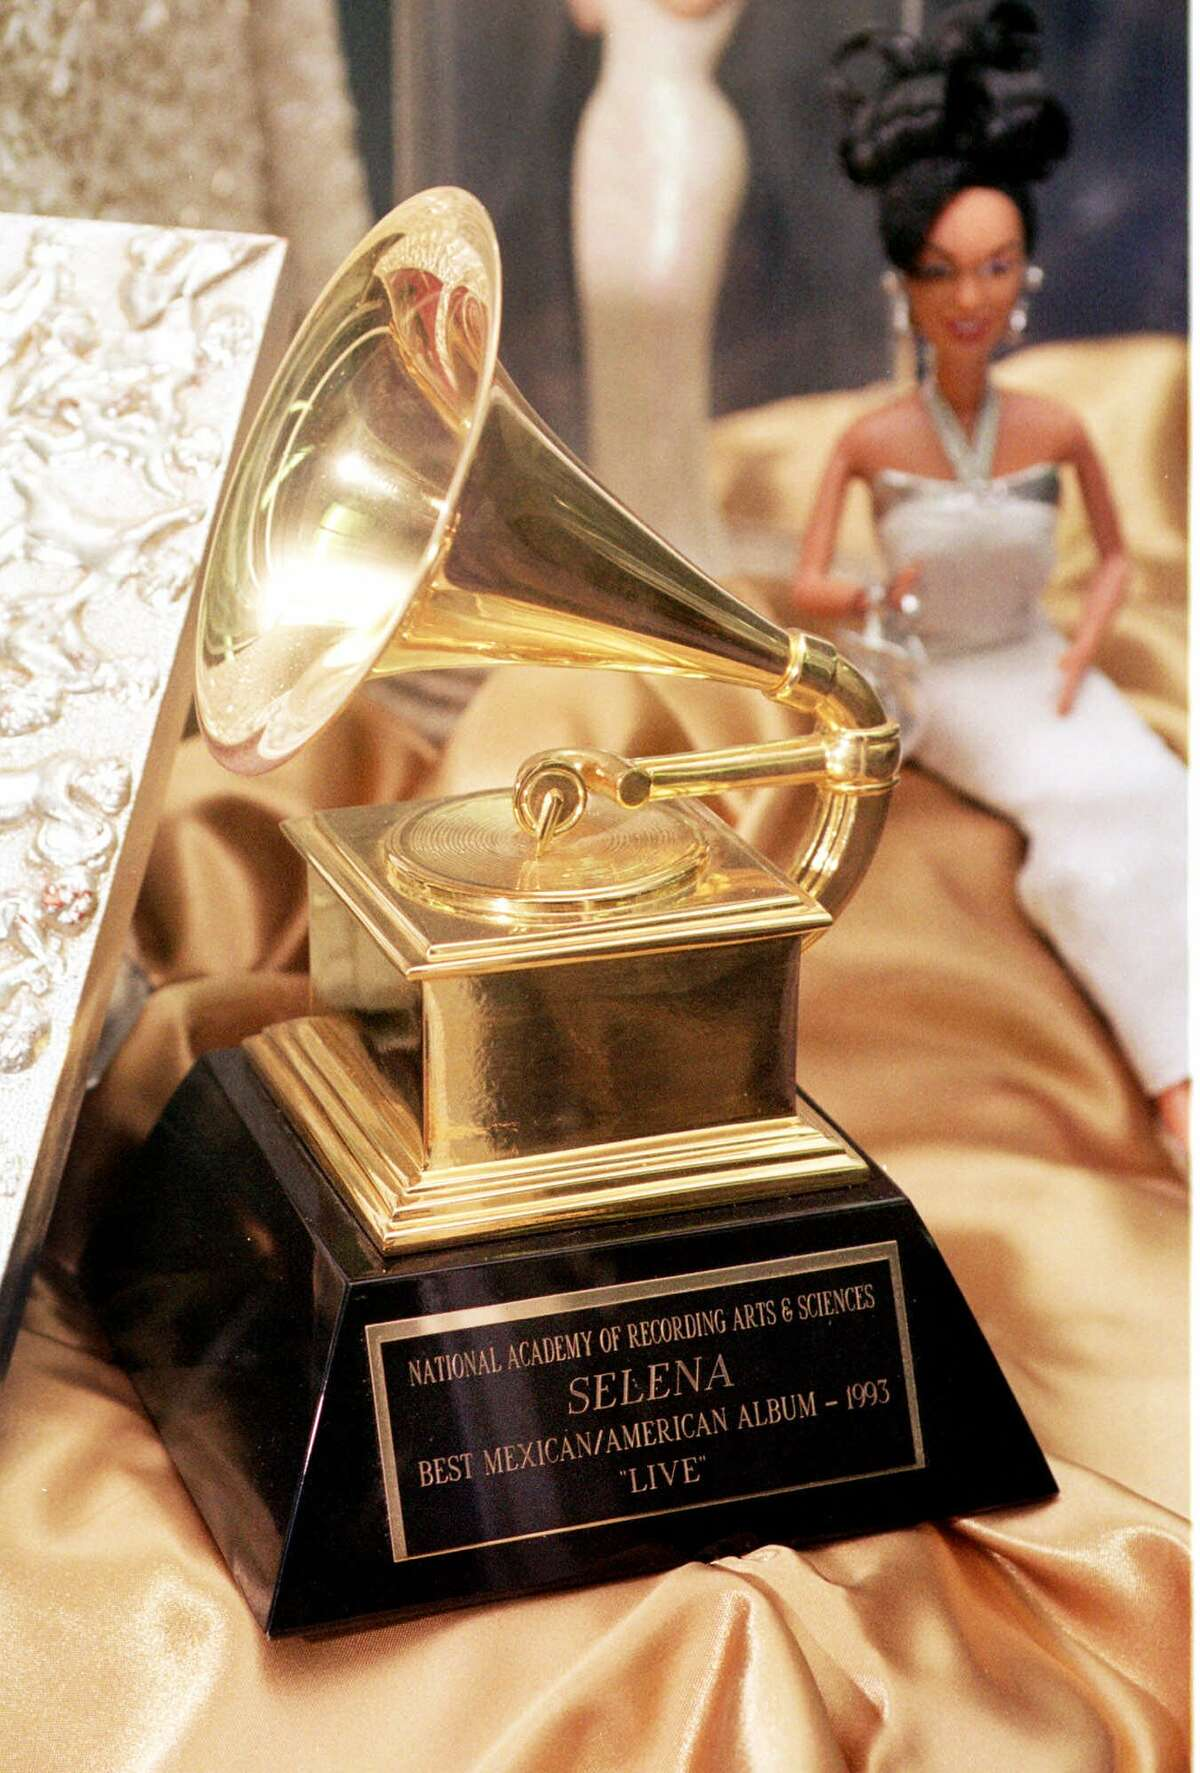 Another Grammy Selena won a 1993 Grammy for her 'Live' album. There would have been more in her future, maybe for recordings in English and Spanish.